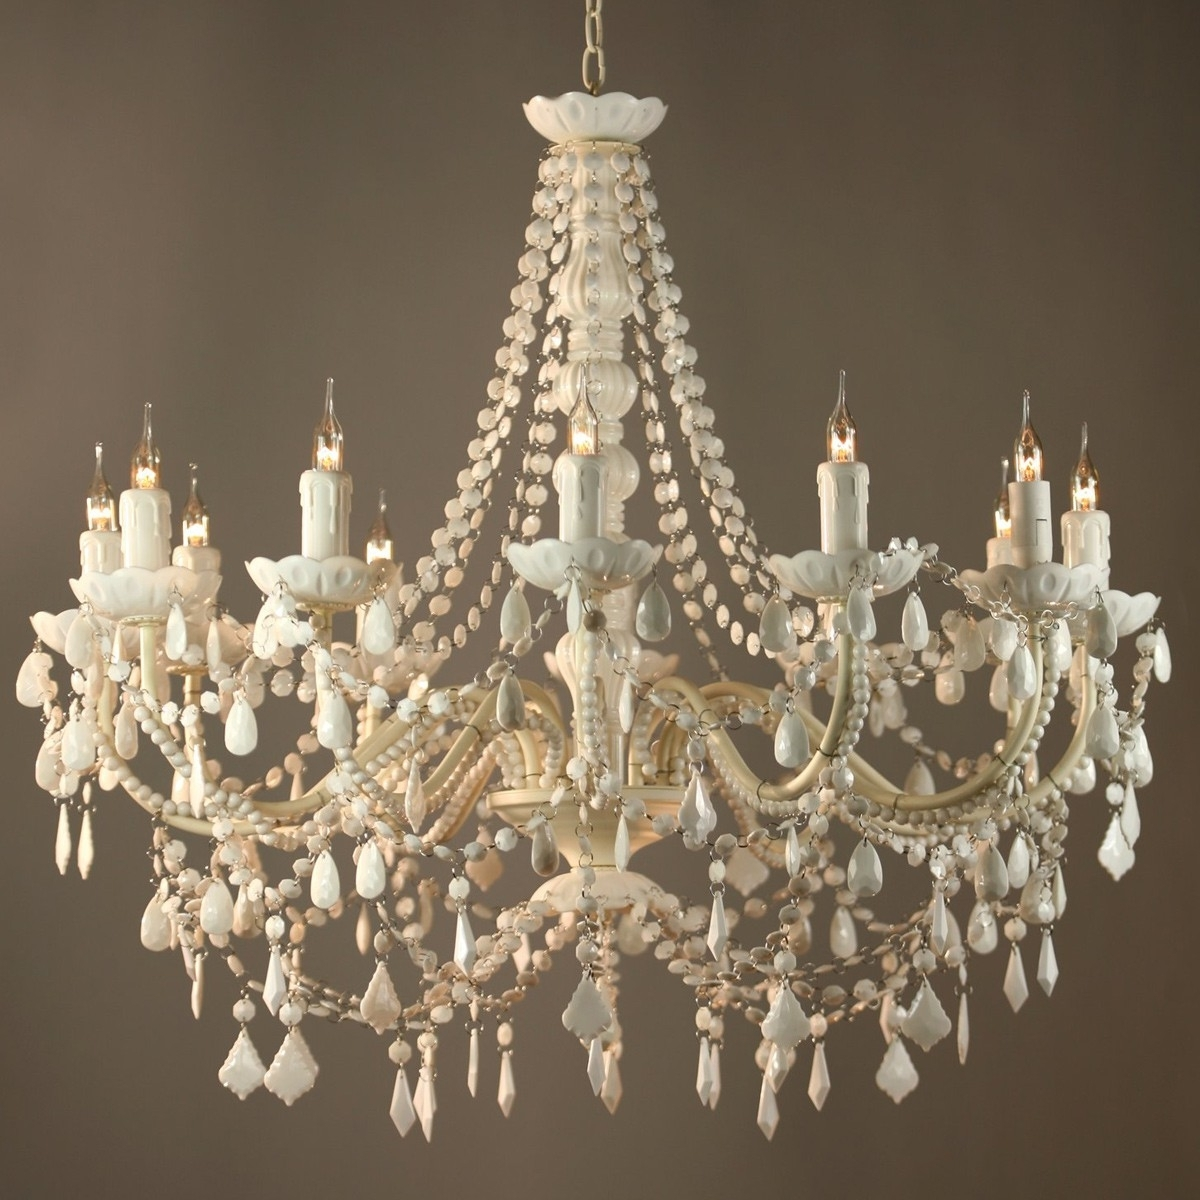 Vintage Style Chandeliers (Gallery 3 of 15)